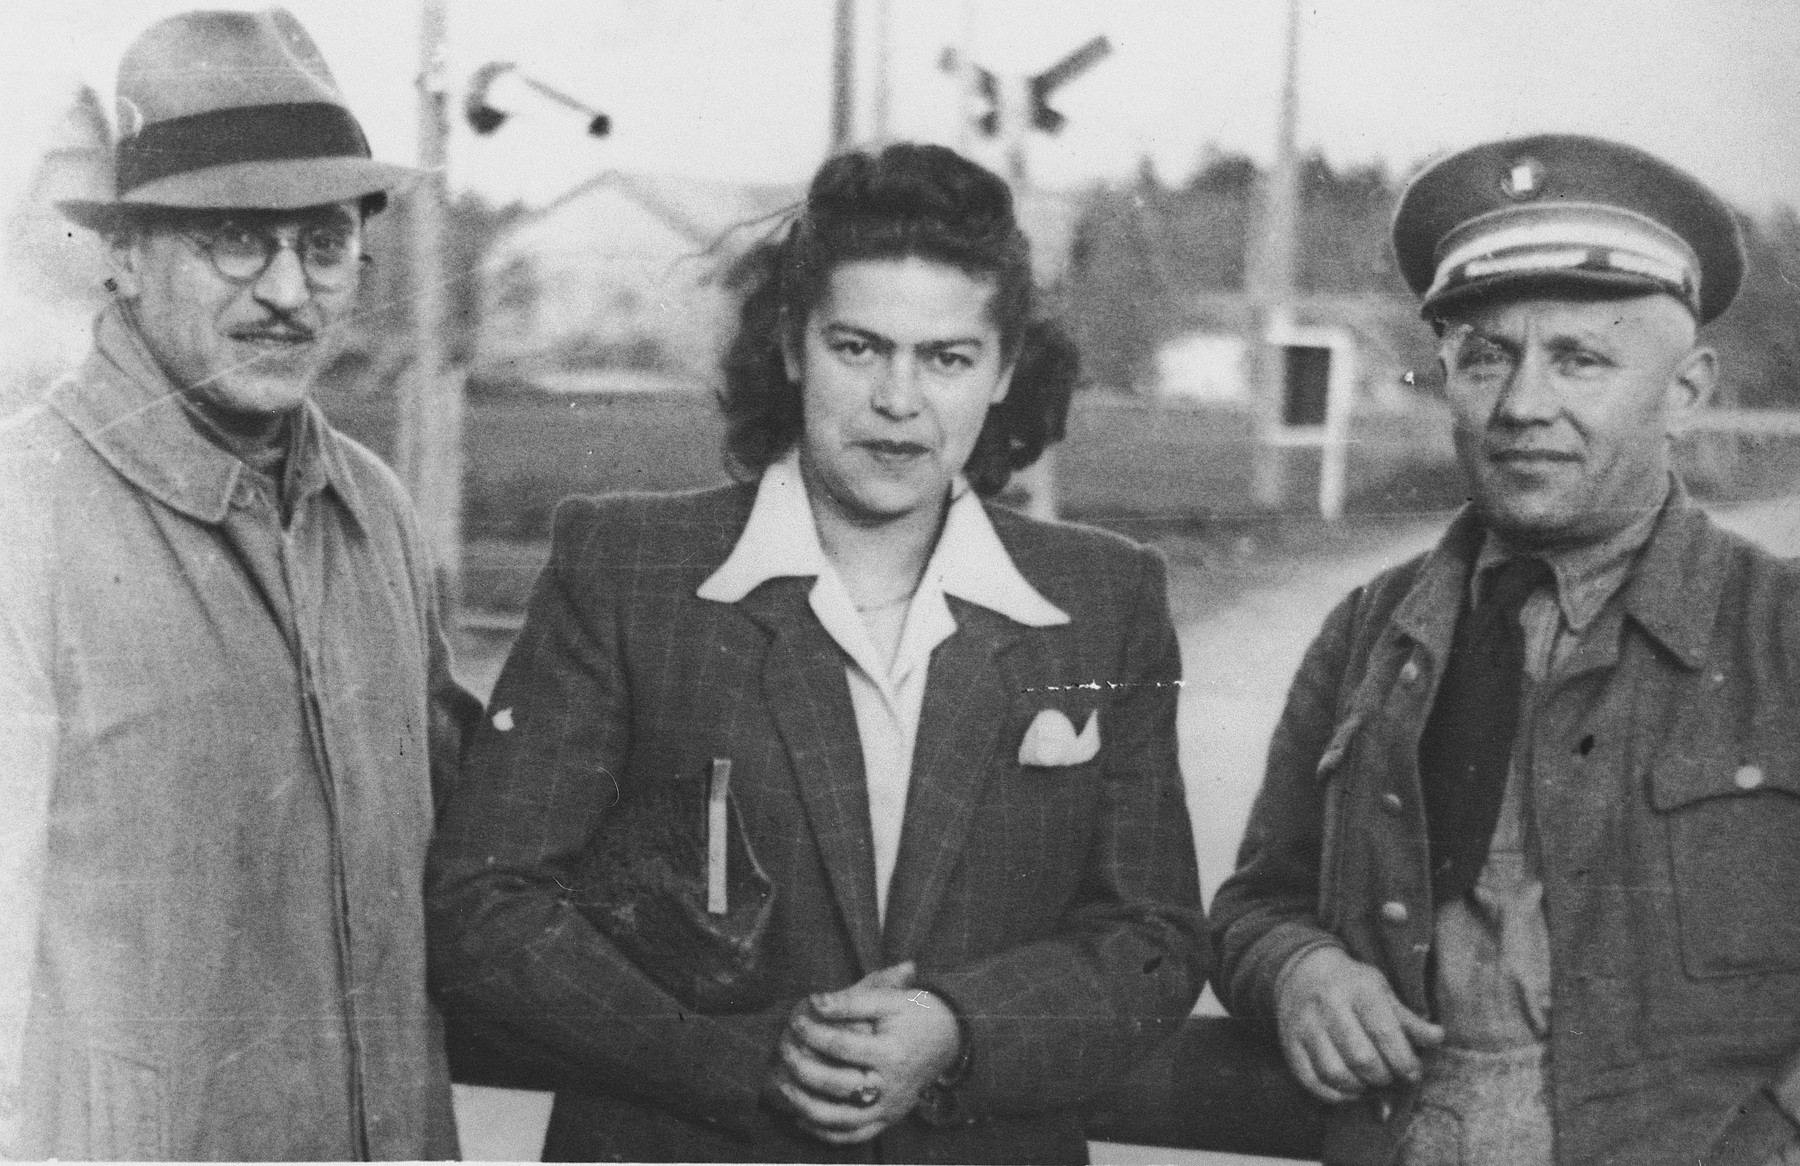 Portrait of three Jewish DPs in the Foehrenwald DP camp.  Yitzhak Baran, head of the Jewish police, is on the far right.